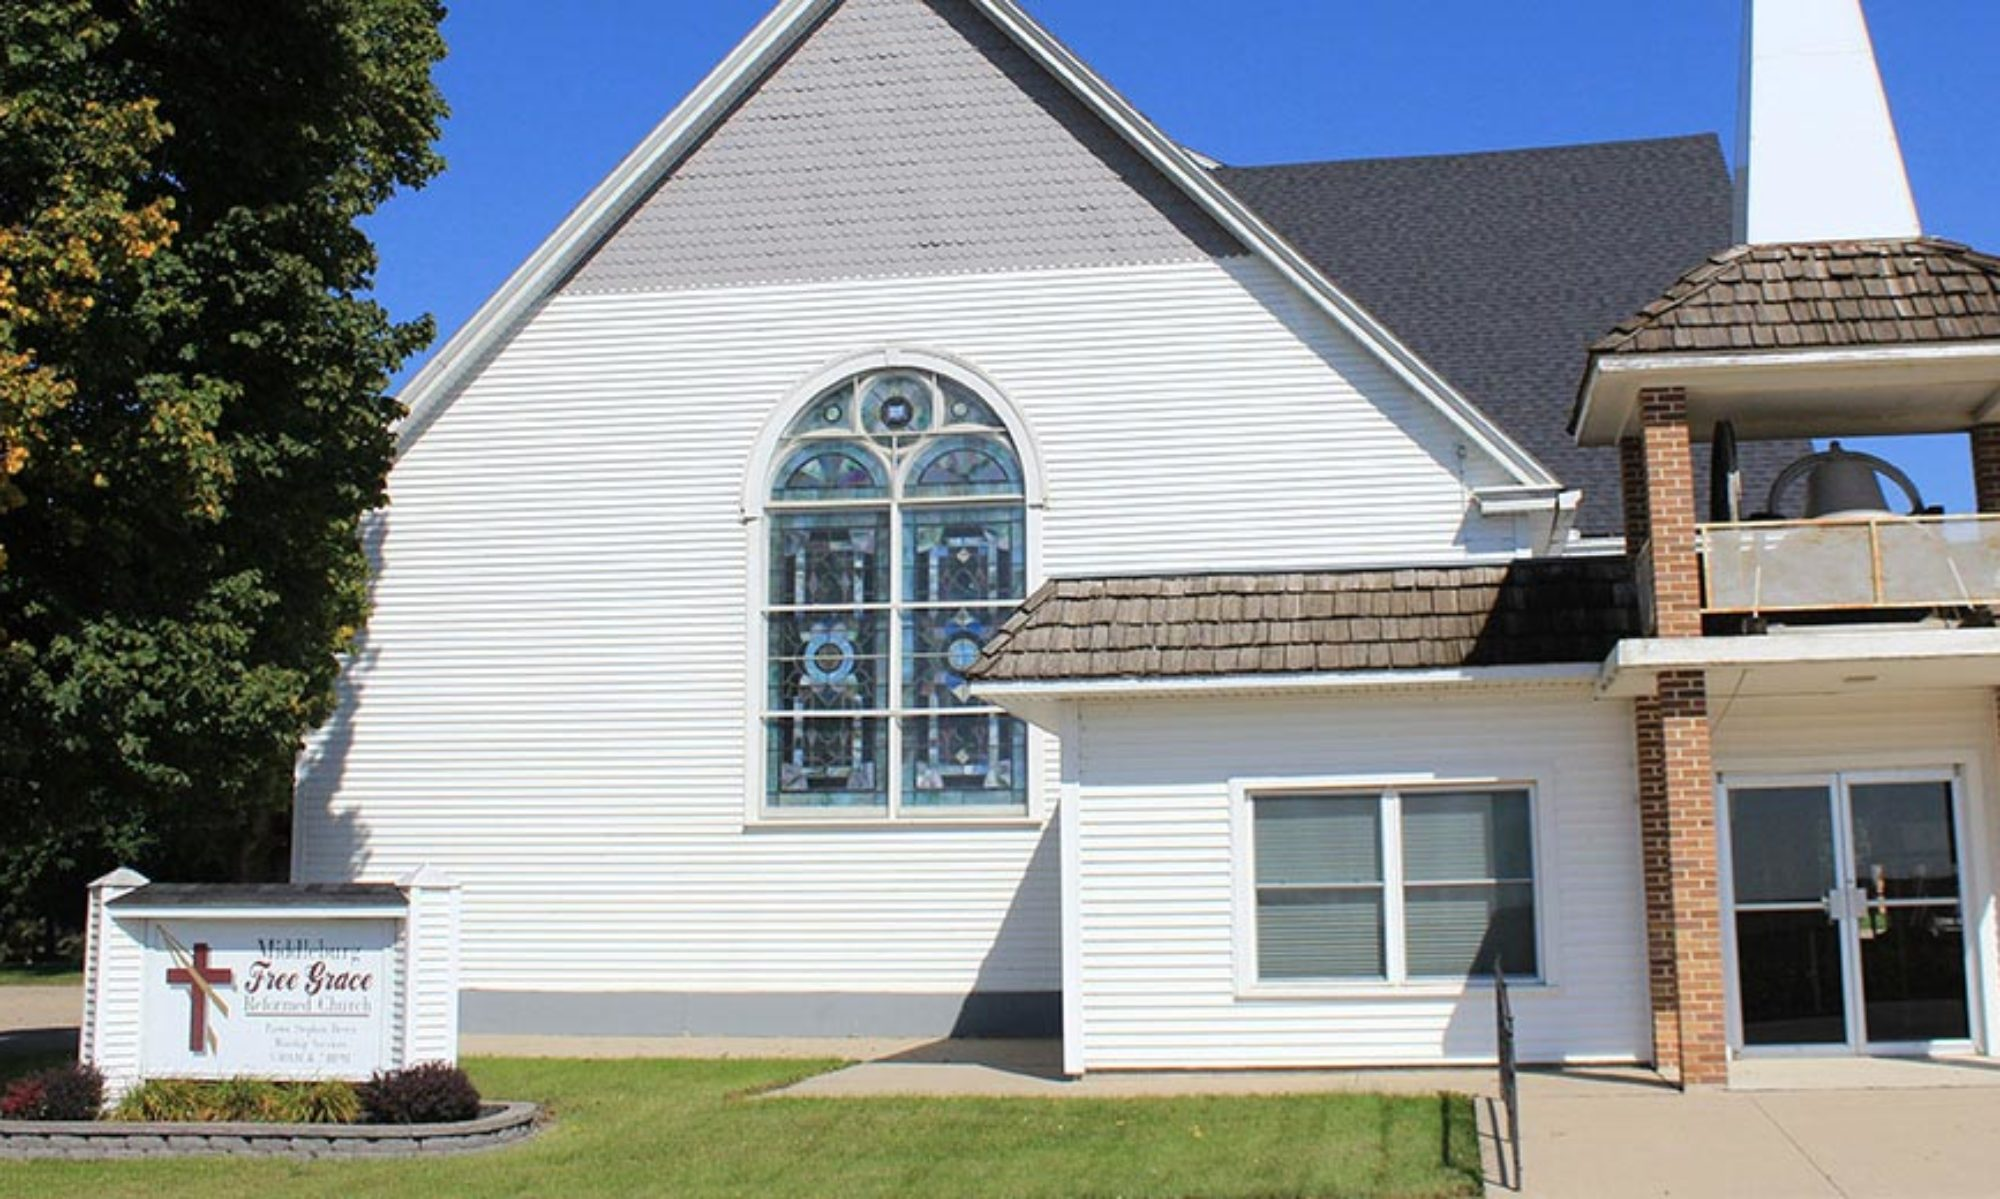 Middleburg Free Grace Reformed Church